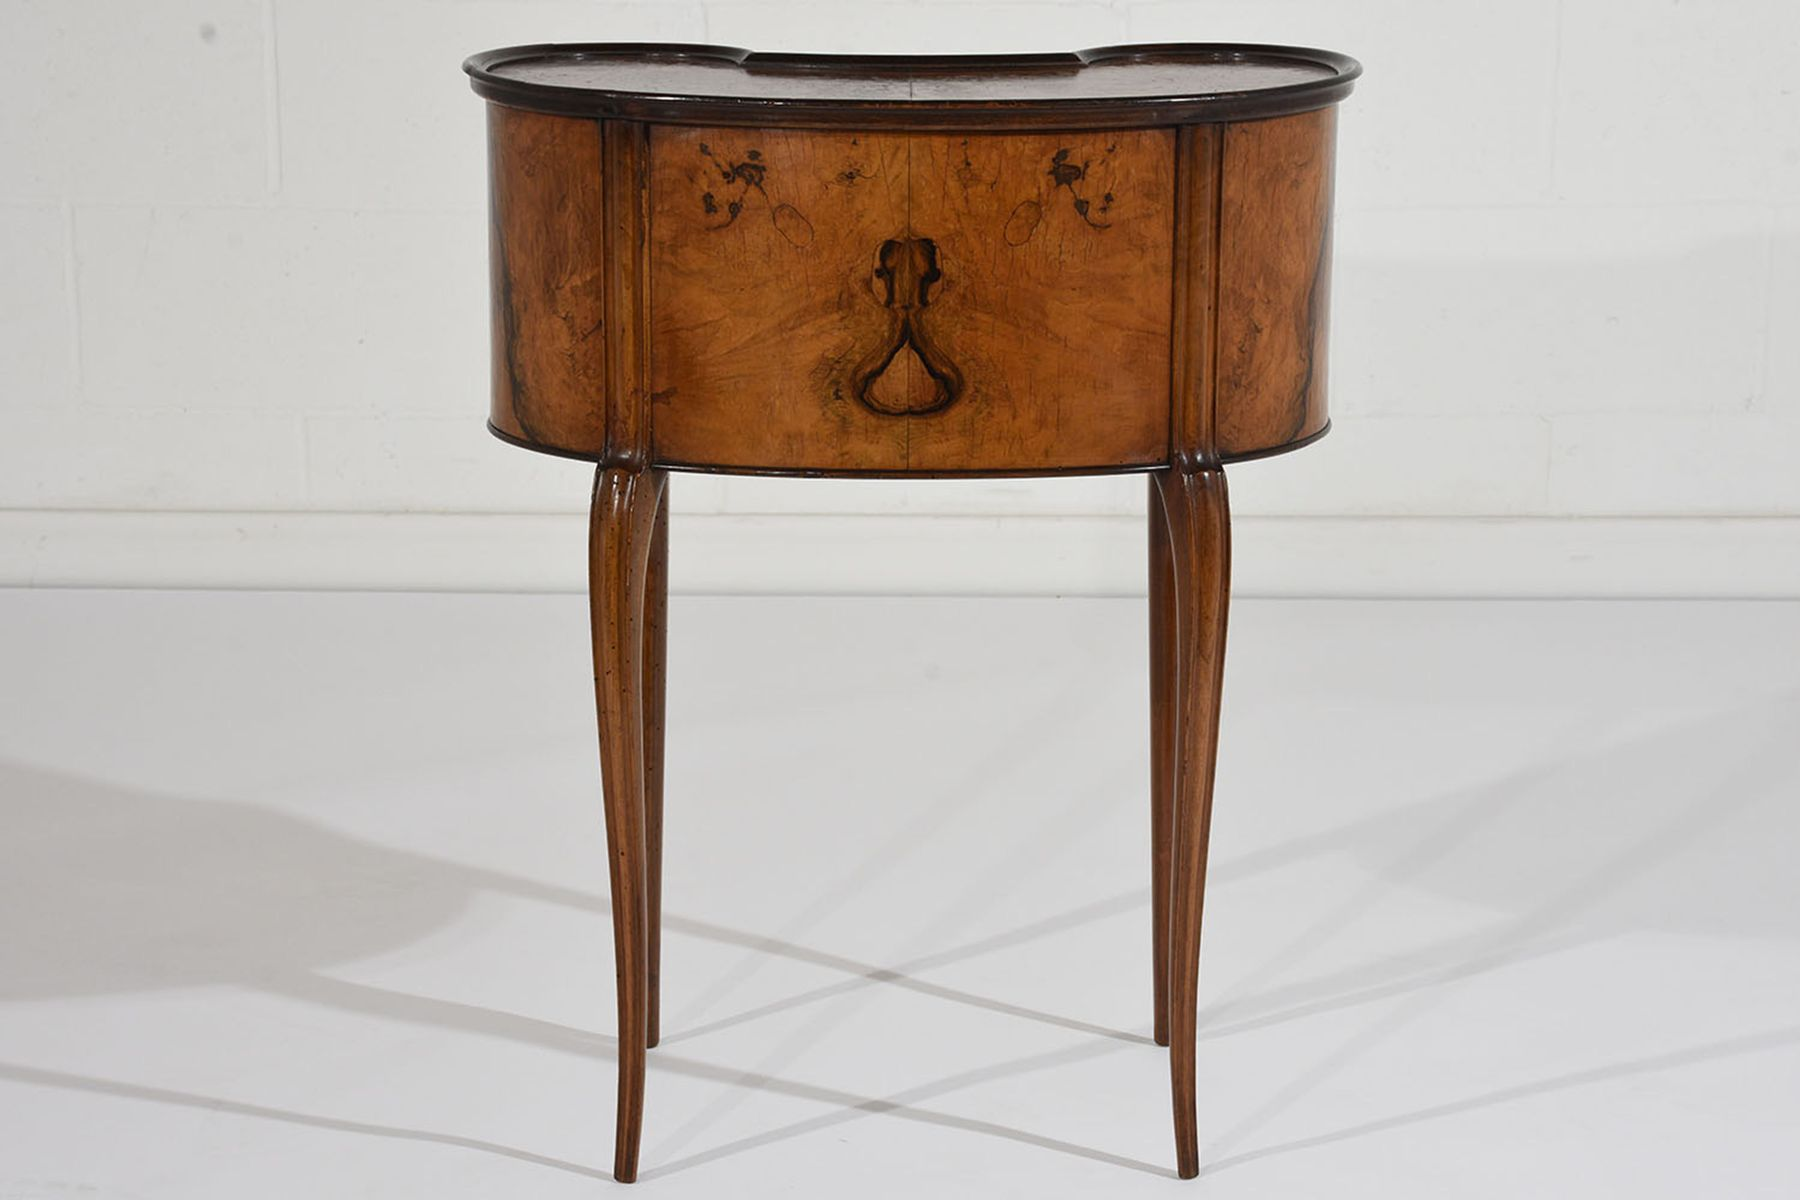 Antique French Louis XVI Style Kidney End Table for sale at Pamono